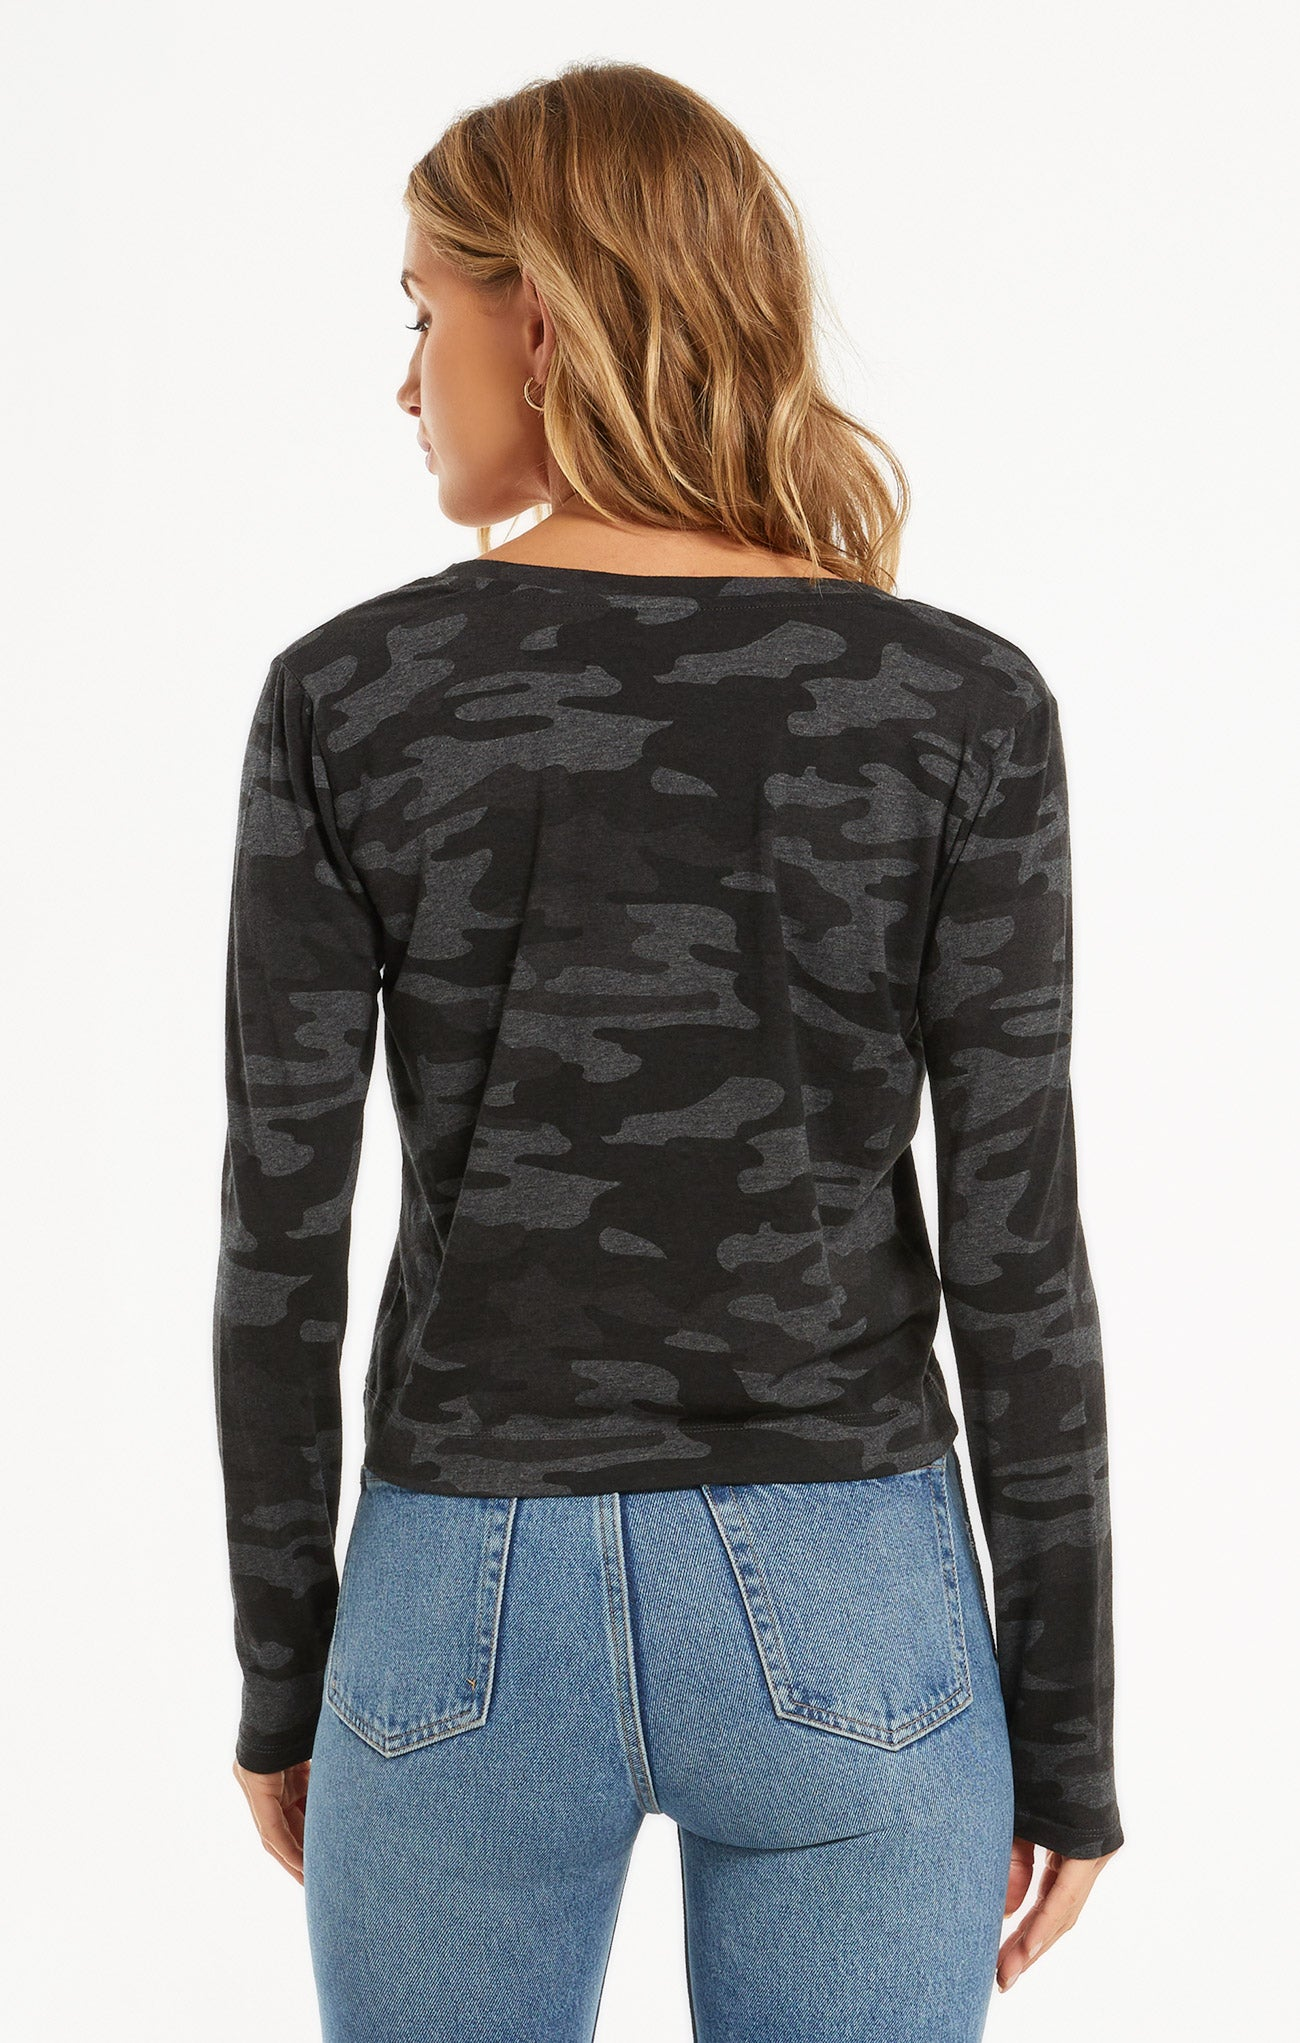 Tops Skimmer Camo Long Sleeve Pocket Tee Camo Dark Charcoal